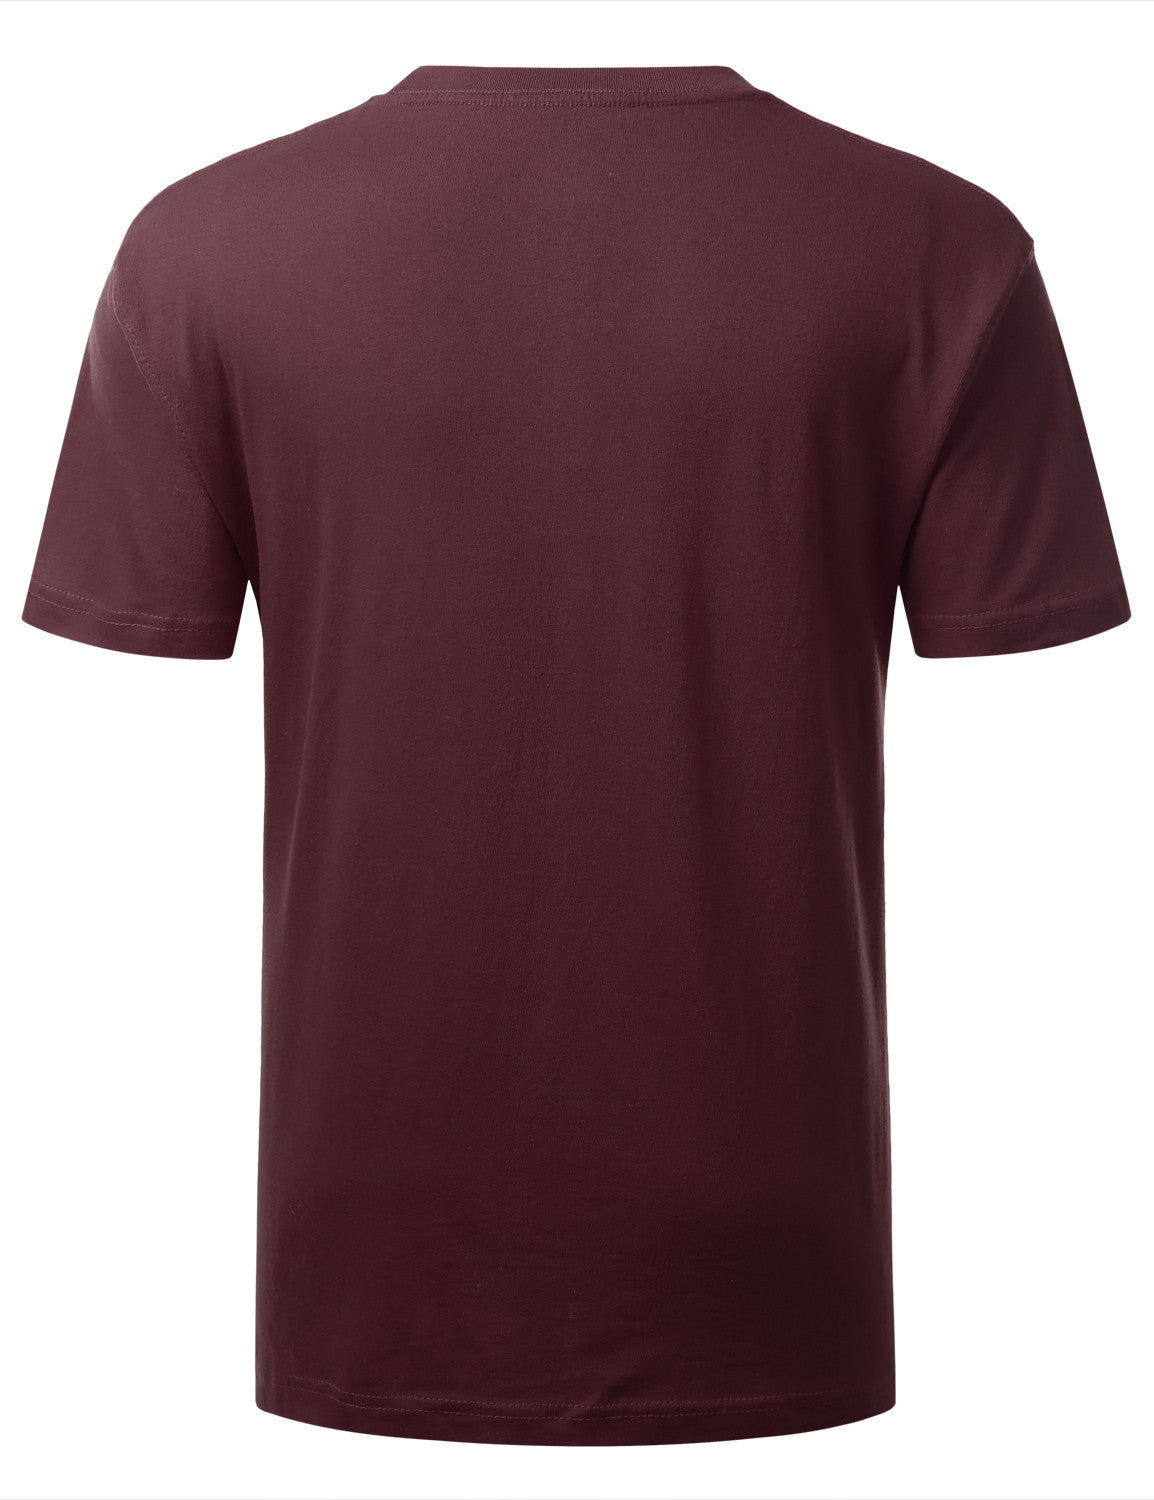 BURGUNDY  Classic Crewneck T Shirt - URBANCREWS